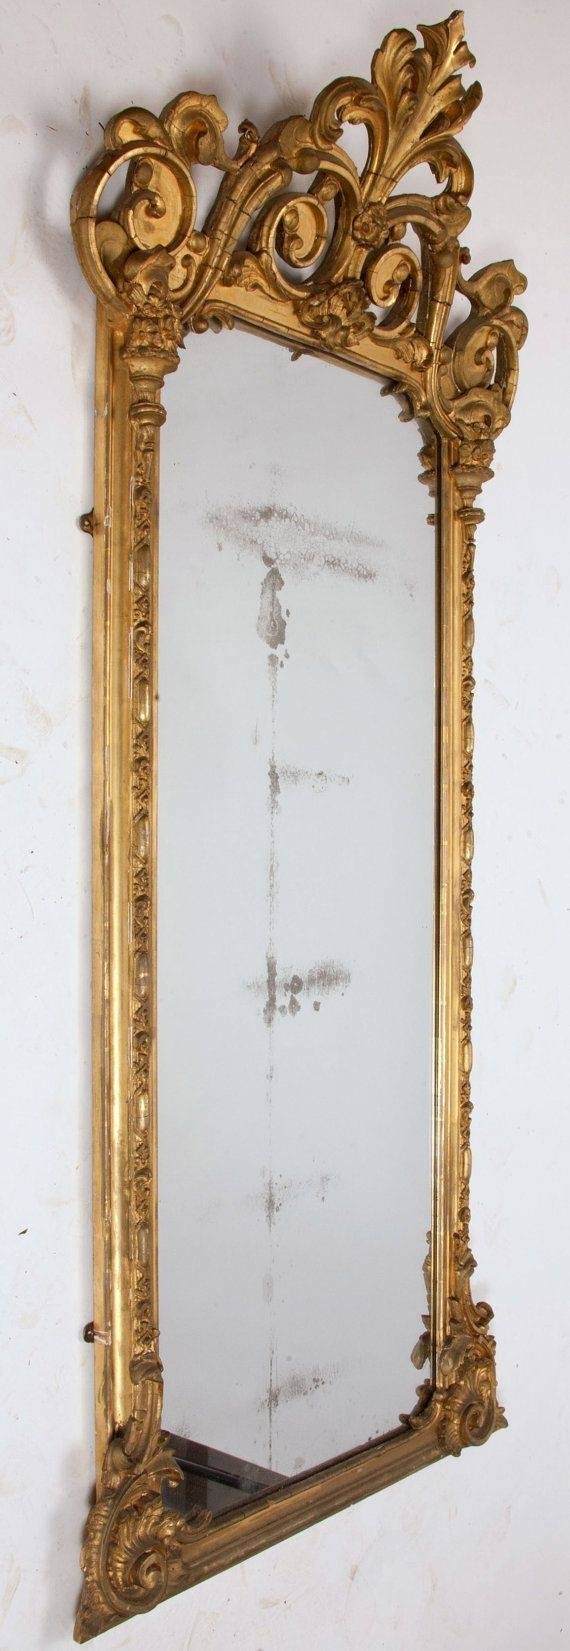 Mirror : Awesome Victorian Mirrors Antique Large Gold Very Ornate Throughout Victorian Mirrors (View 9 of 15)